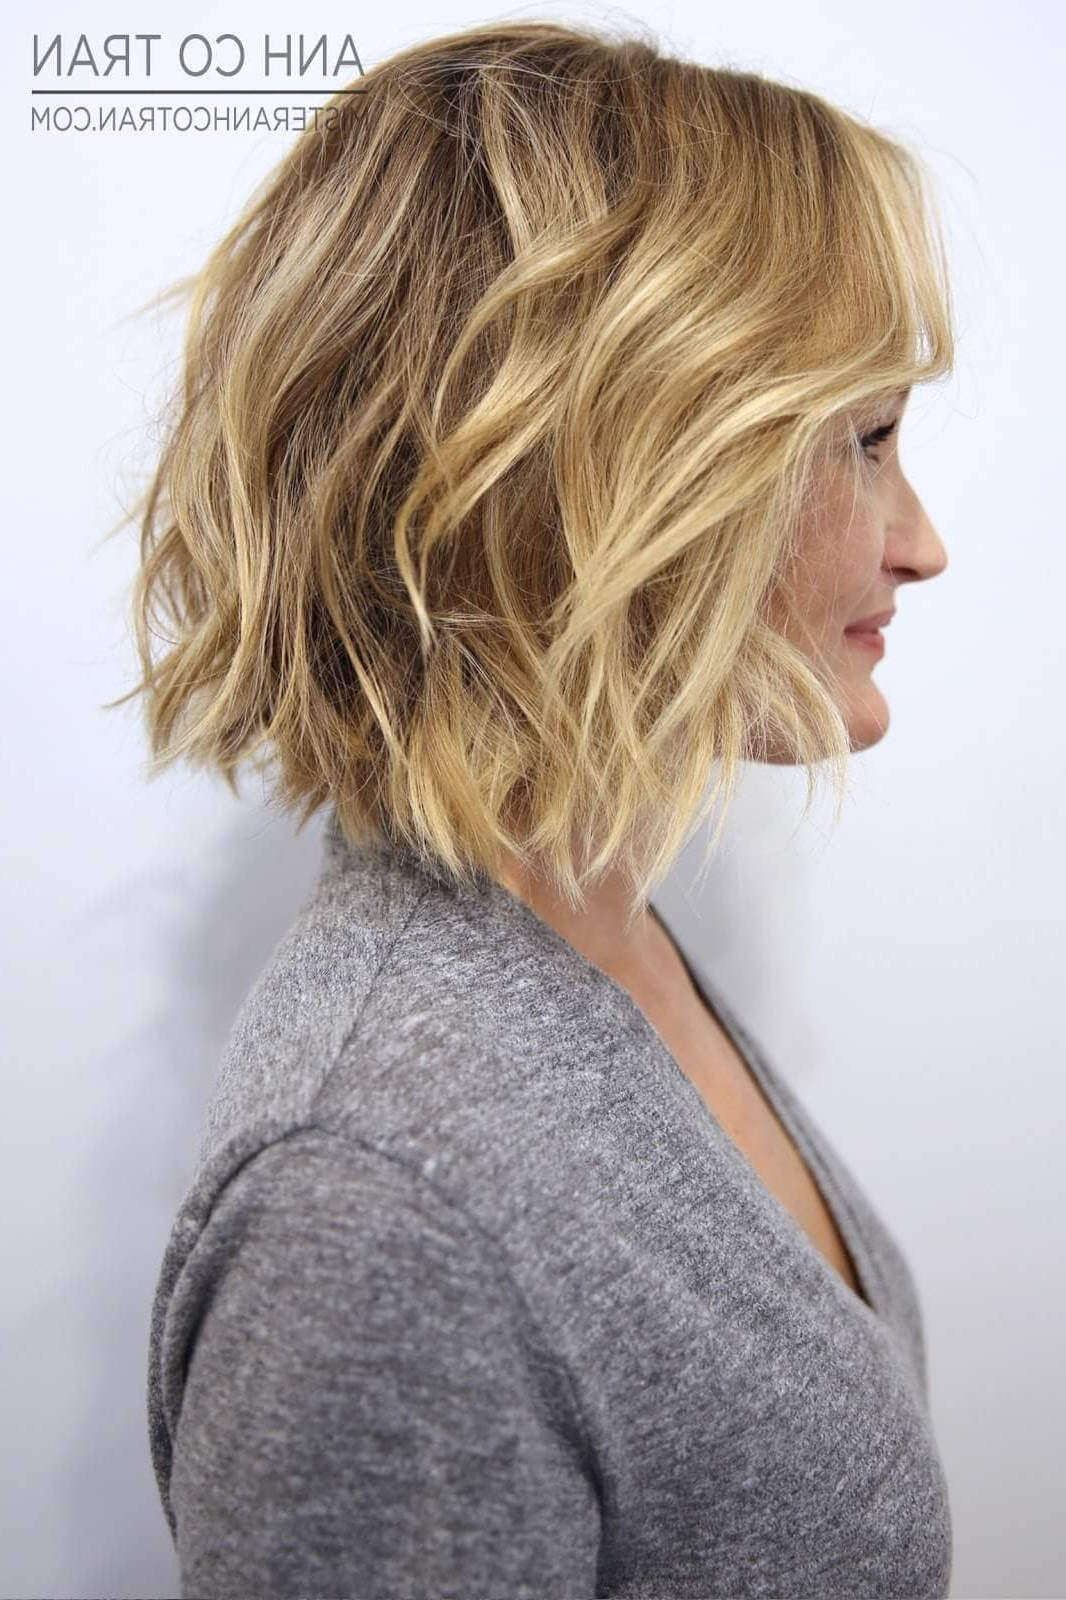 50 Ways To Wear Short Hair With Bangs For A Fresh New Look Regarding Choppy Blonde Pixie Hairstyles With Long Side Bangs (View 12 of 20)